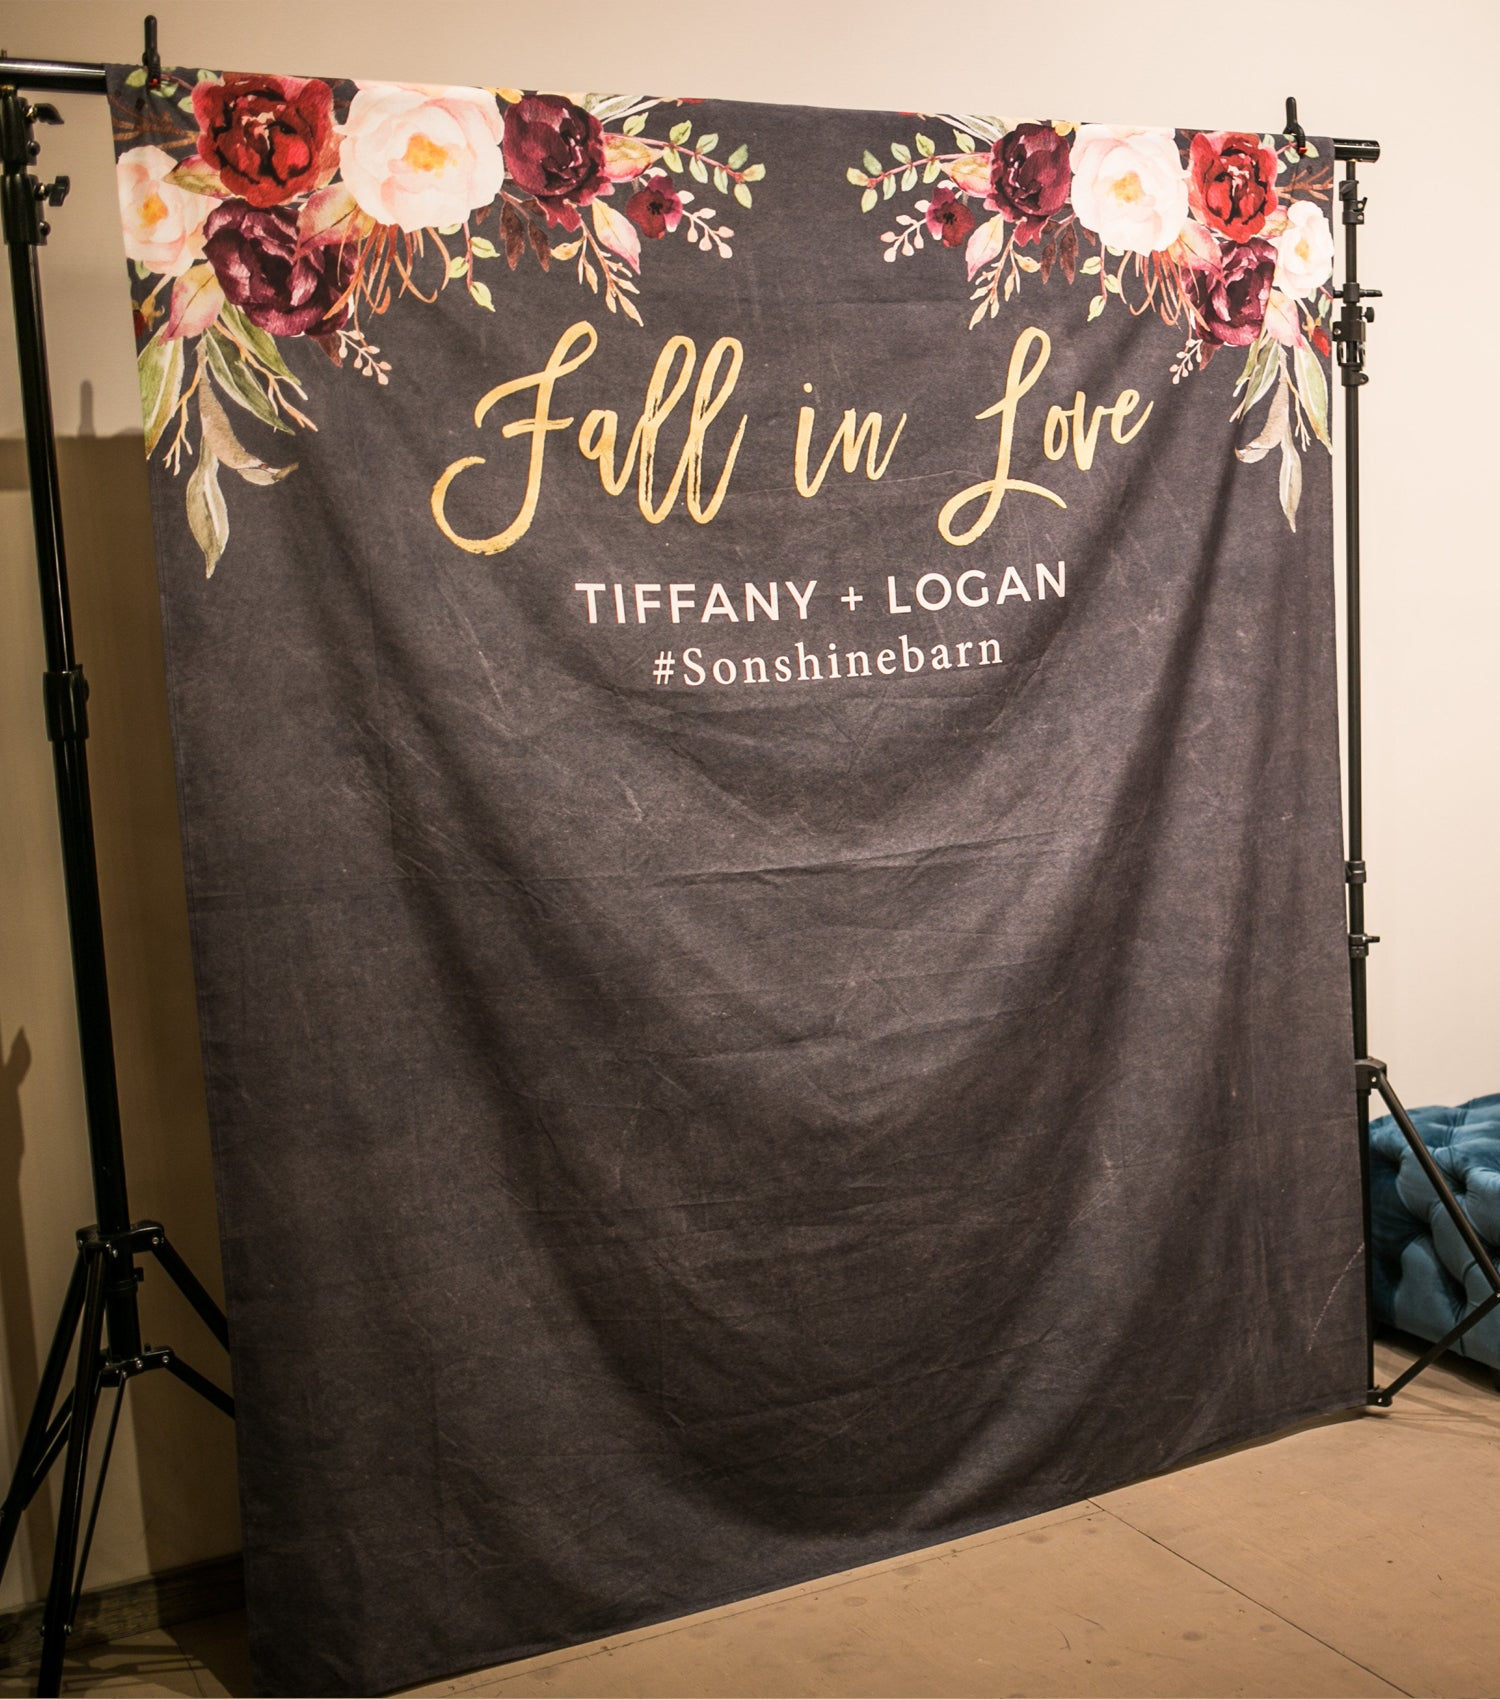 Fall In Love Wedding Banner Autumn Wedding Photo Booth Backdrop Blushing Drops